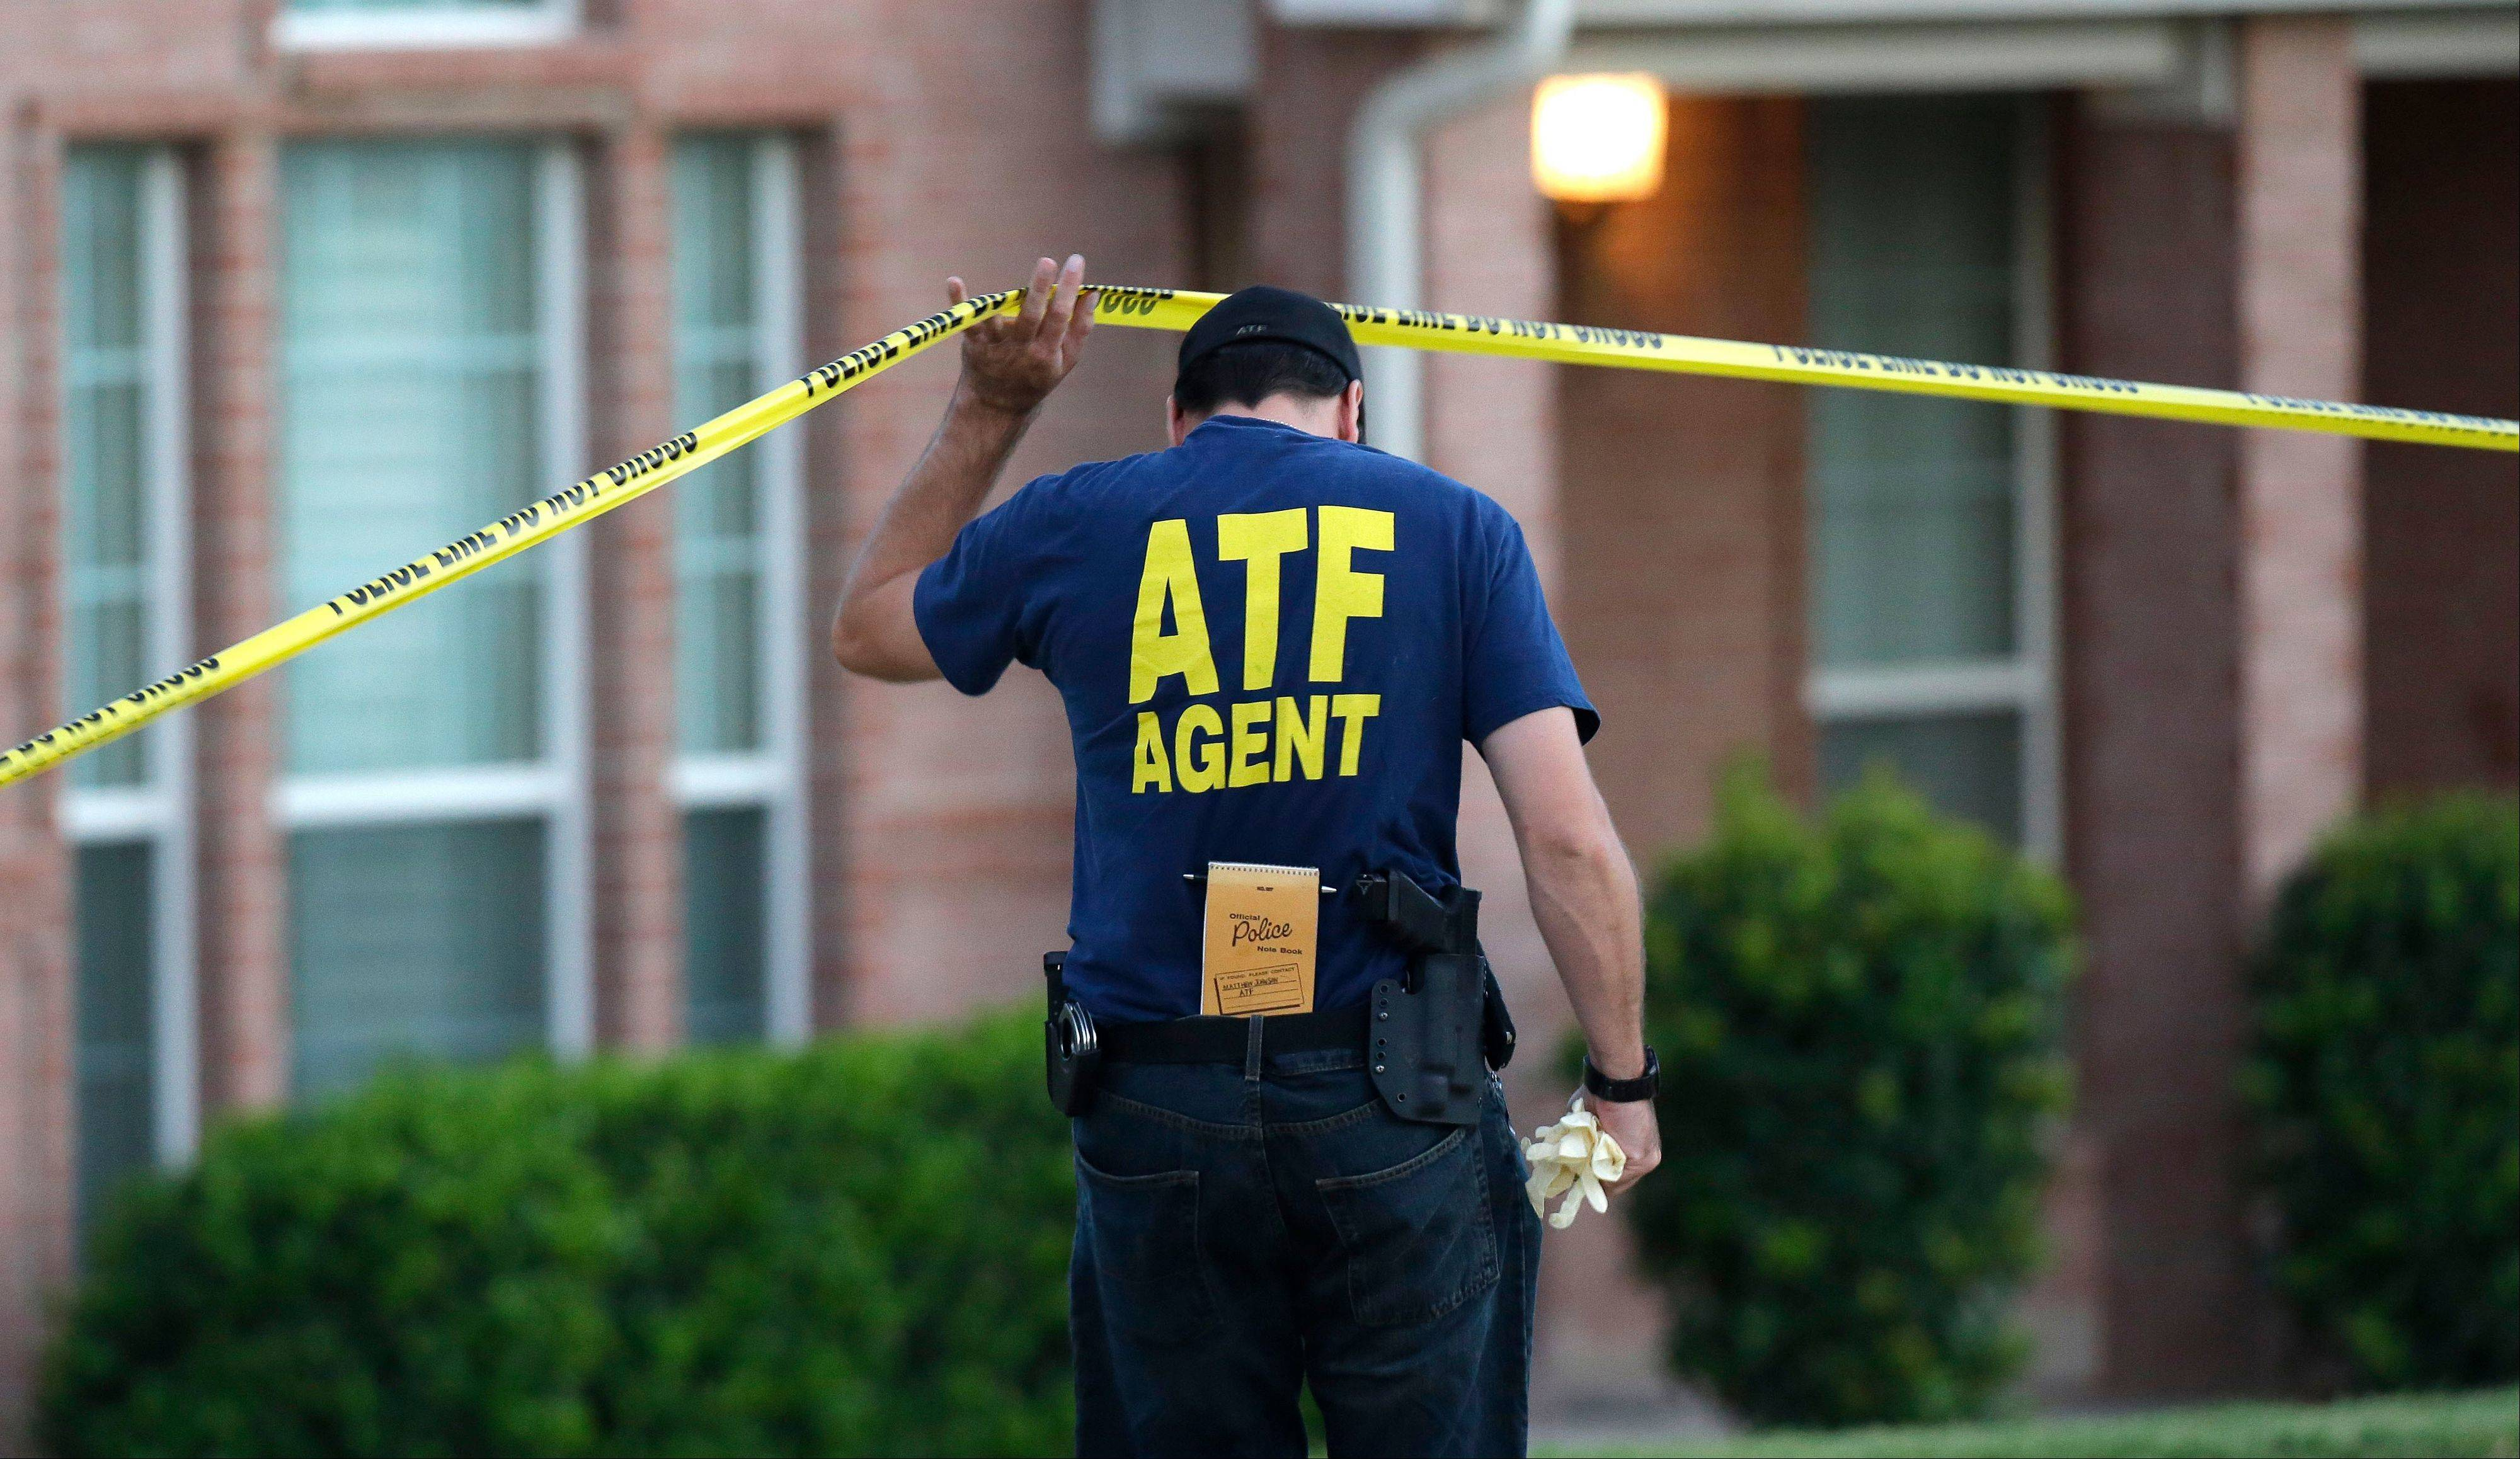 An ATF agent lifts crime scene tape outside the scene of two murders Thursday morning, Aug. 8, 2013, in DeSoto, Texas. Four people were killed at two different locations in South Dallas County and the suspected shooter is in police custody.